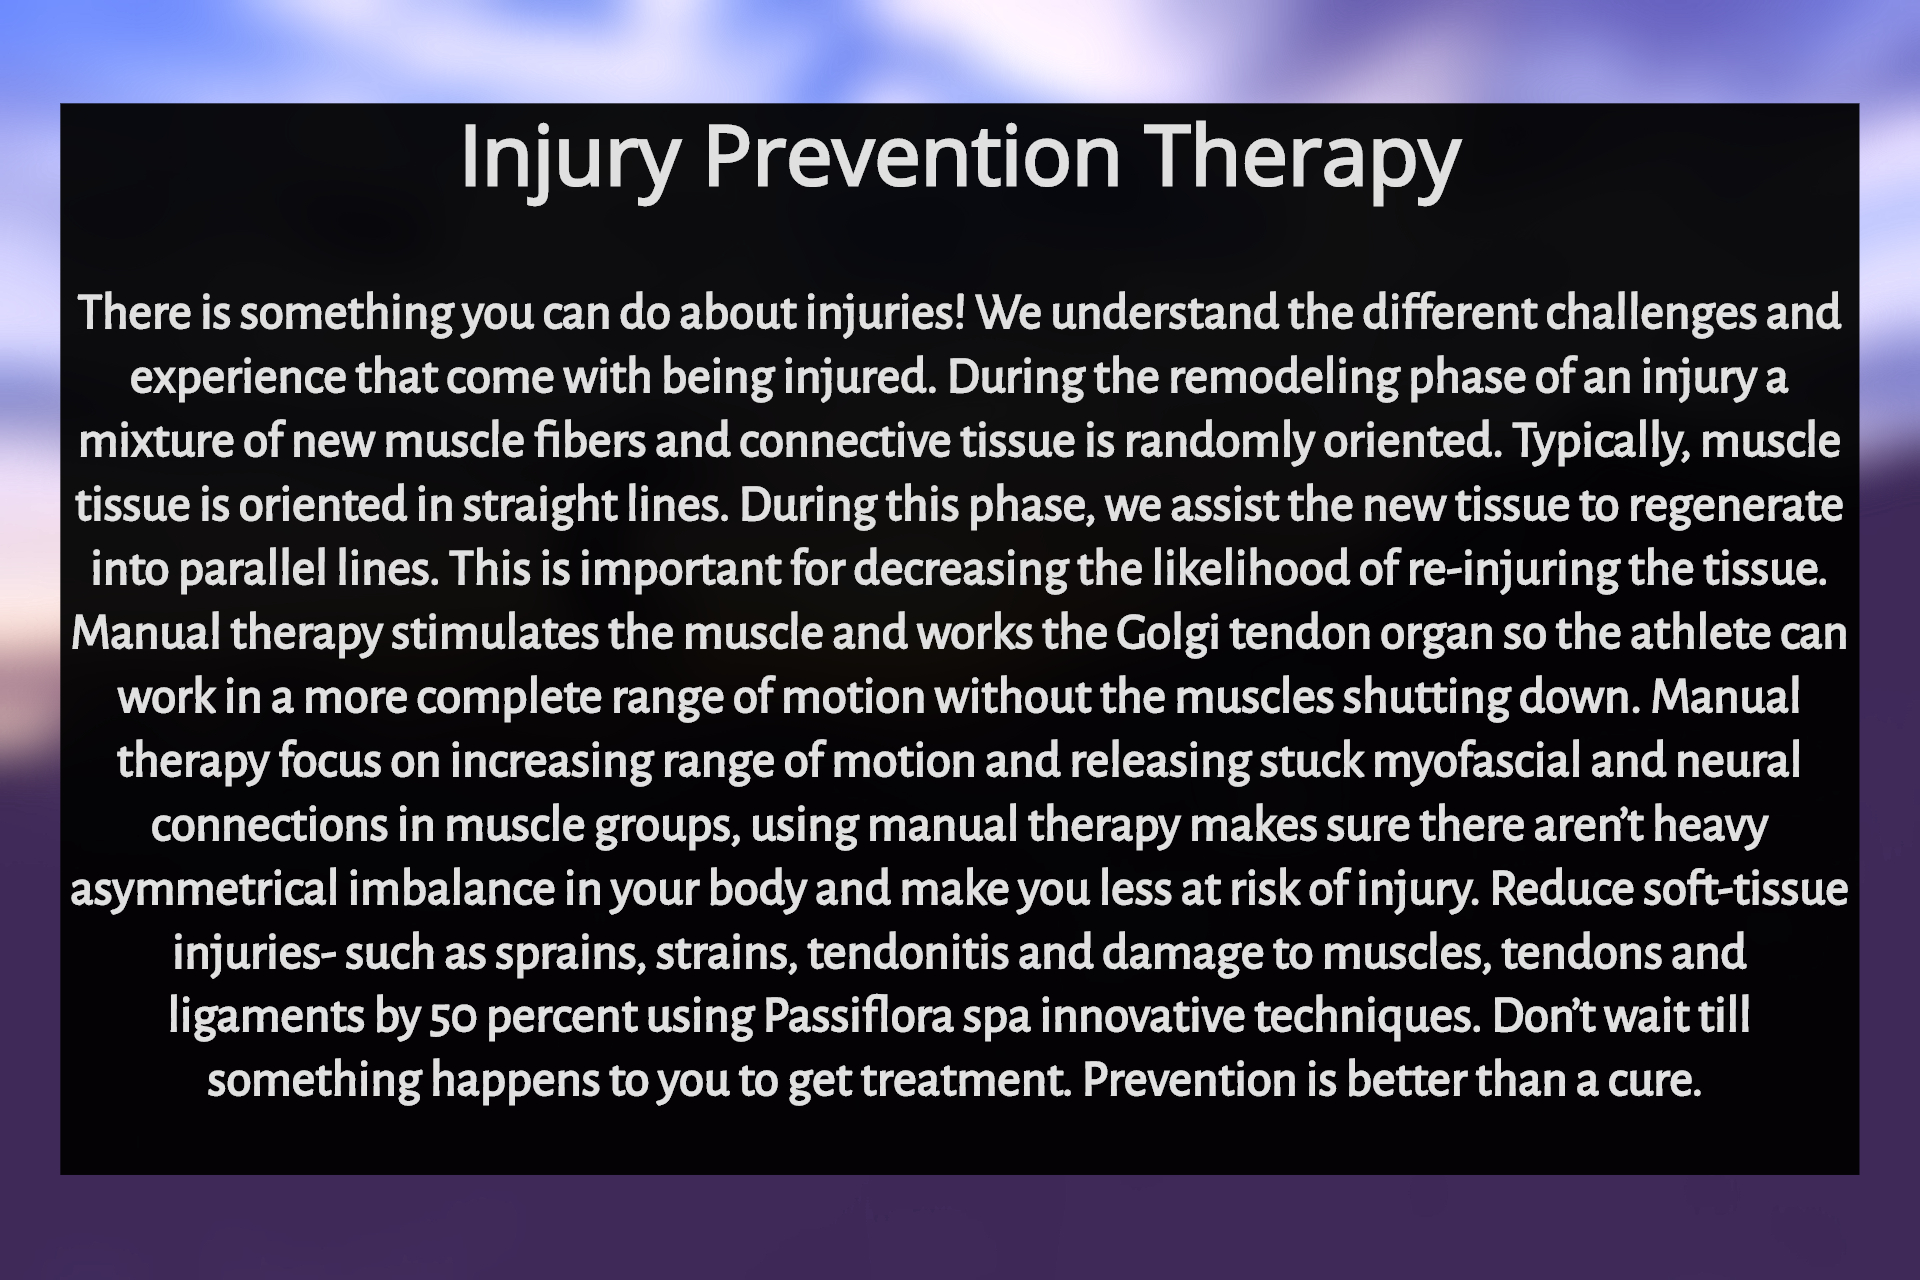 Injury Prevention Therapy.jpg